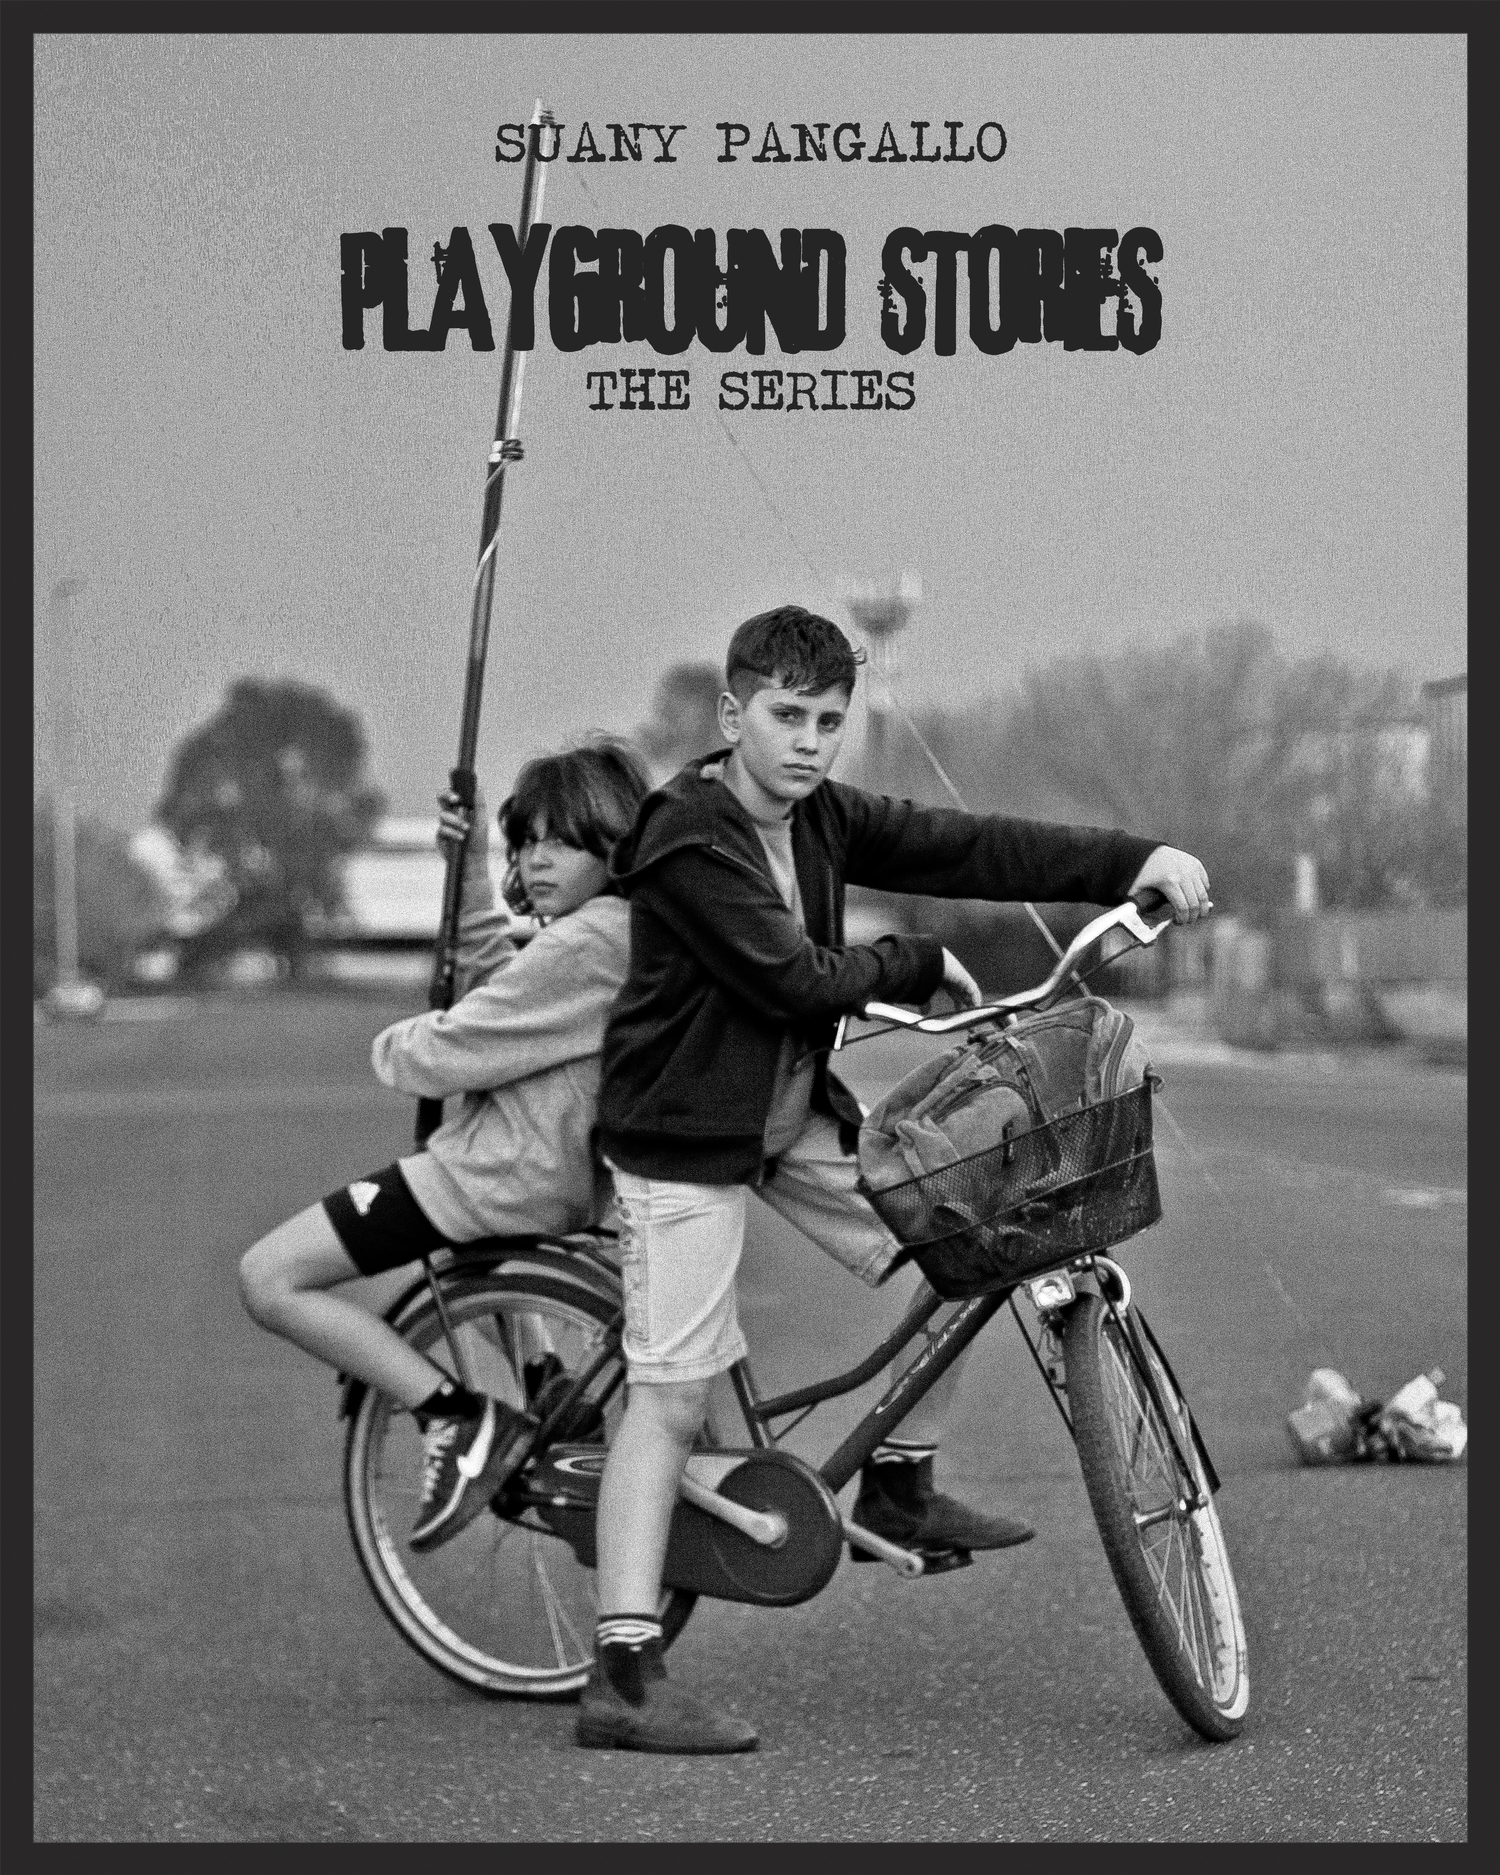 PLAYGROUND STORIES - A series of episodes about the adventures of two young boys in a science-fiction reality that take place in the very outskirts of Rome